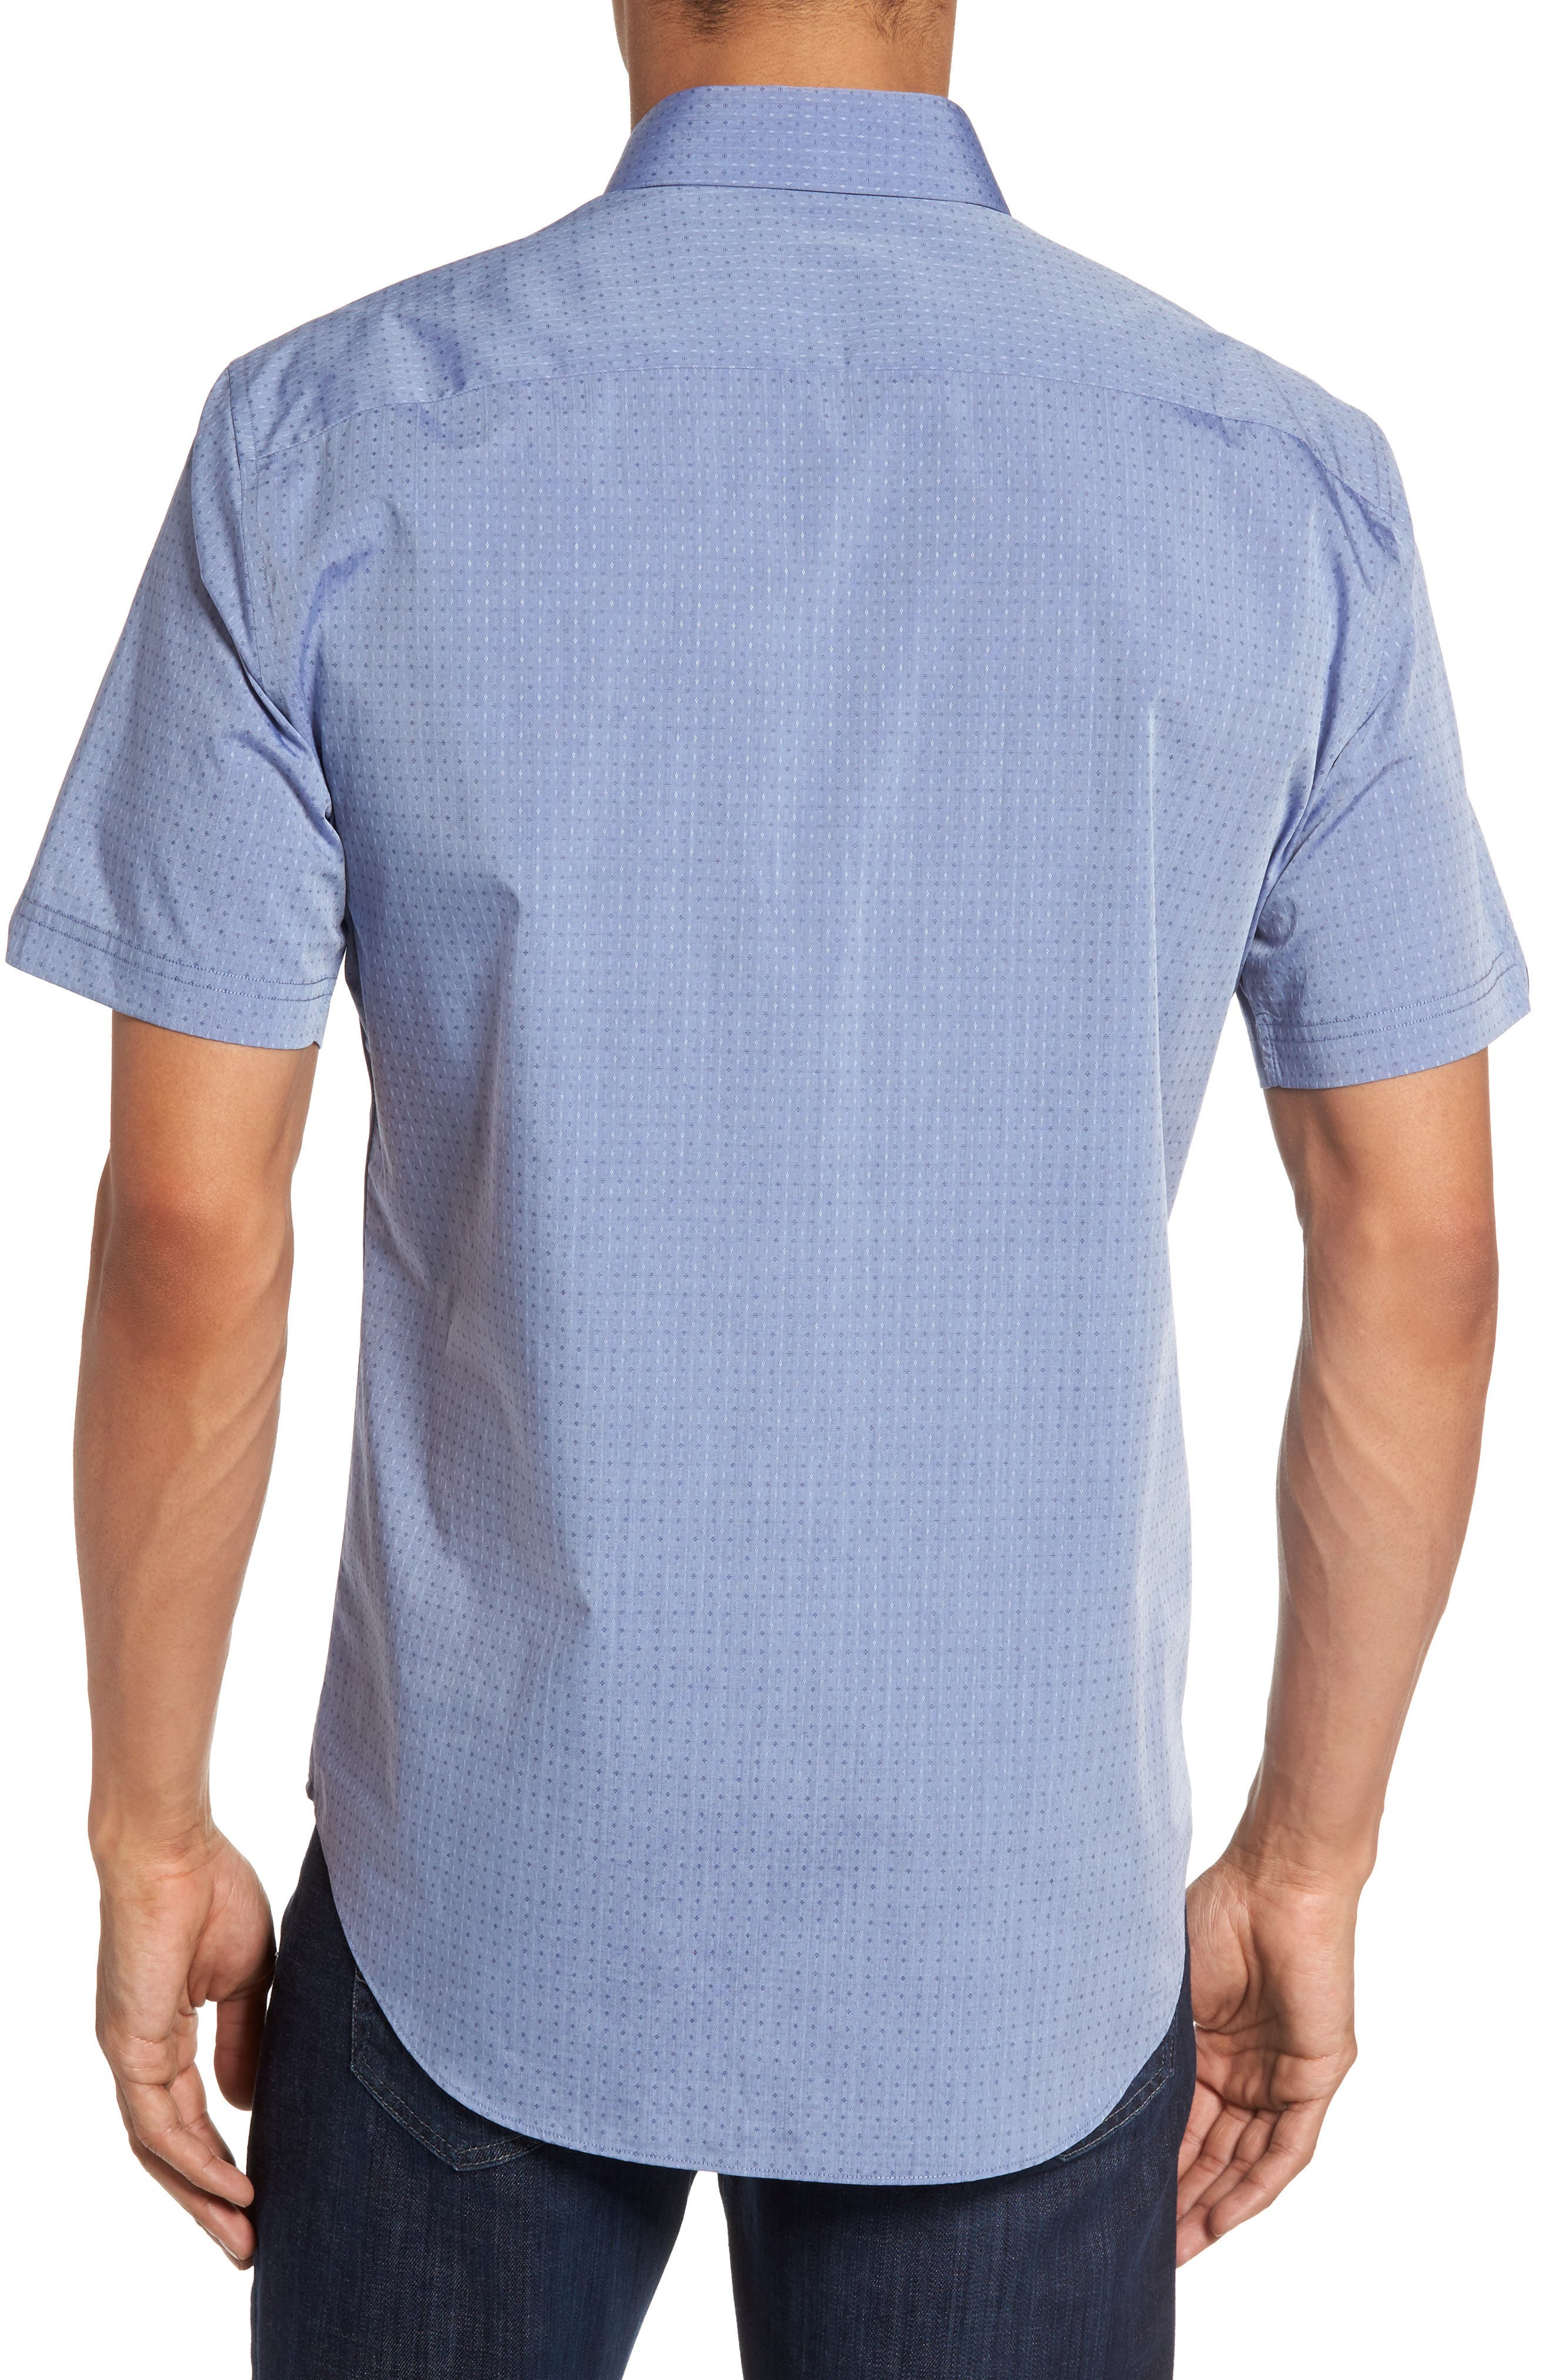 Diamond Print Short Sleeve Sport Shirt,                             Alternate thumbnail 2, color,                             400